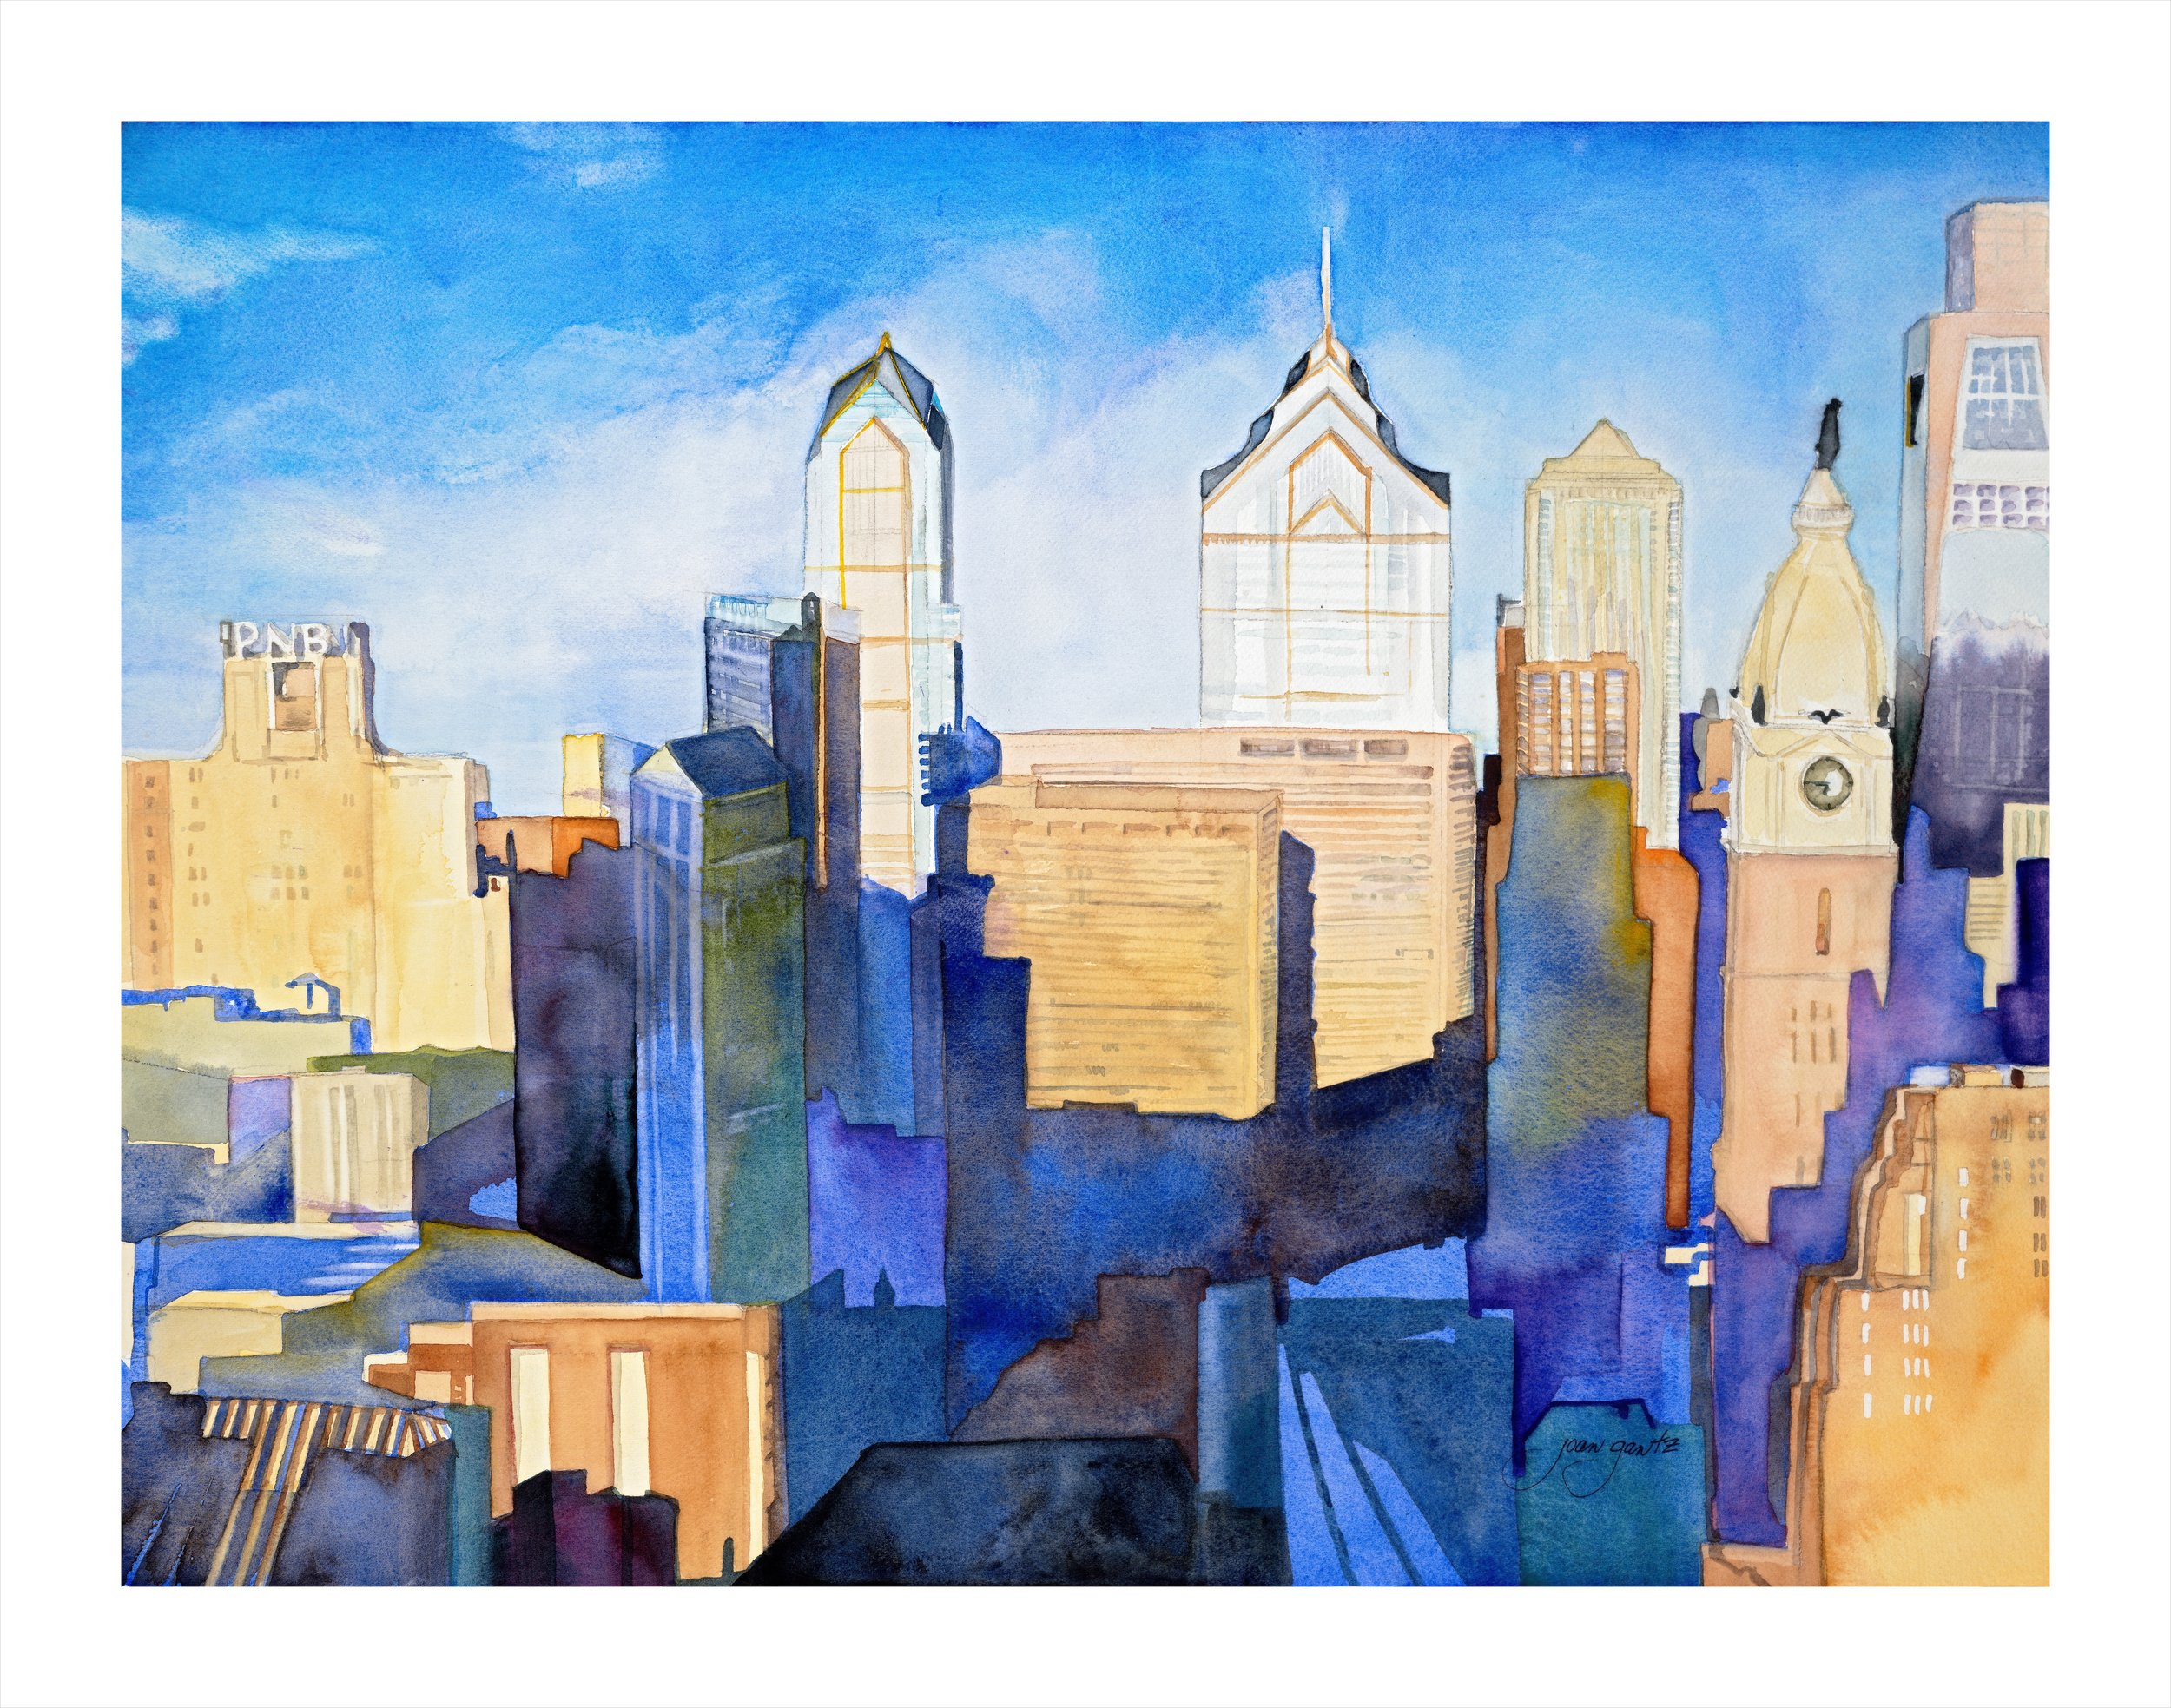 """ Philadelphia Emerging"" watercolor on paper 30"" x 35"" framed $600"